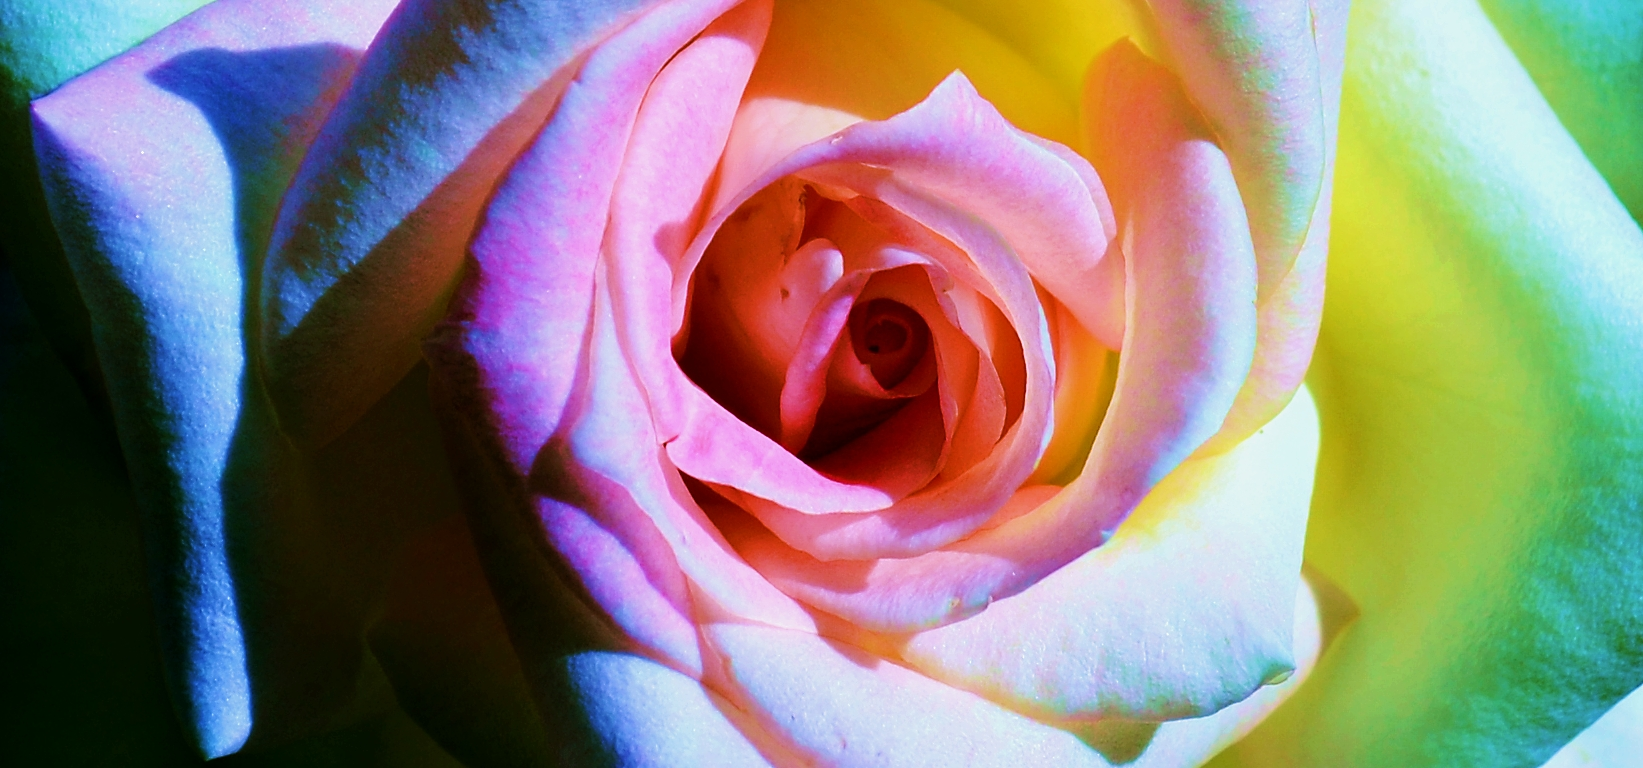 Abstract Photograph: 'The Hyperpsychedelic Rose' by artist and photographer John Russell